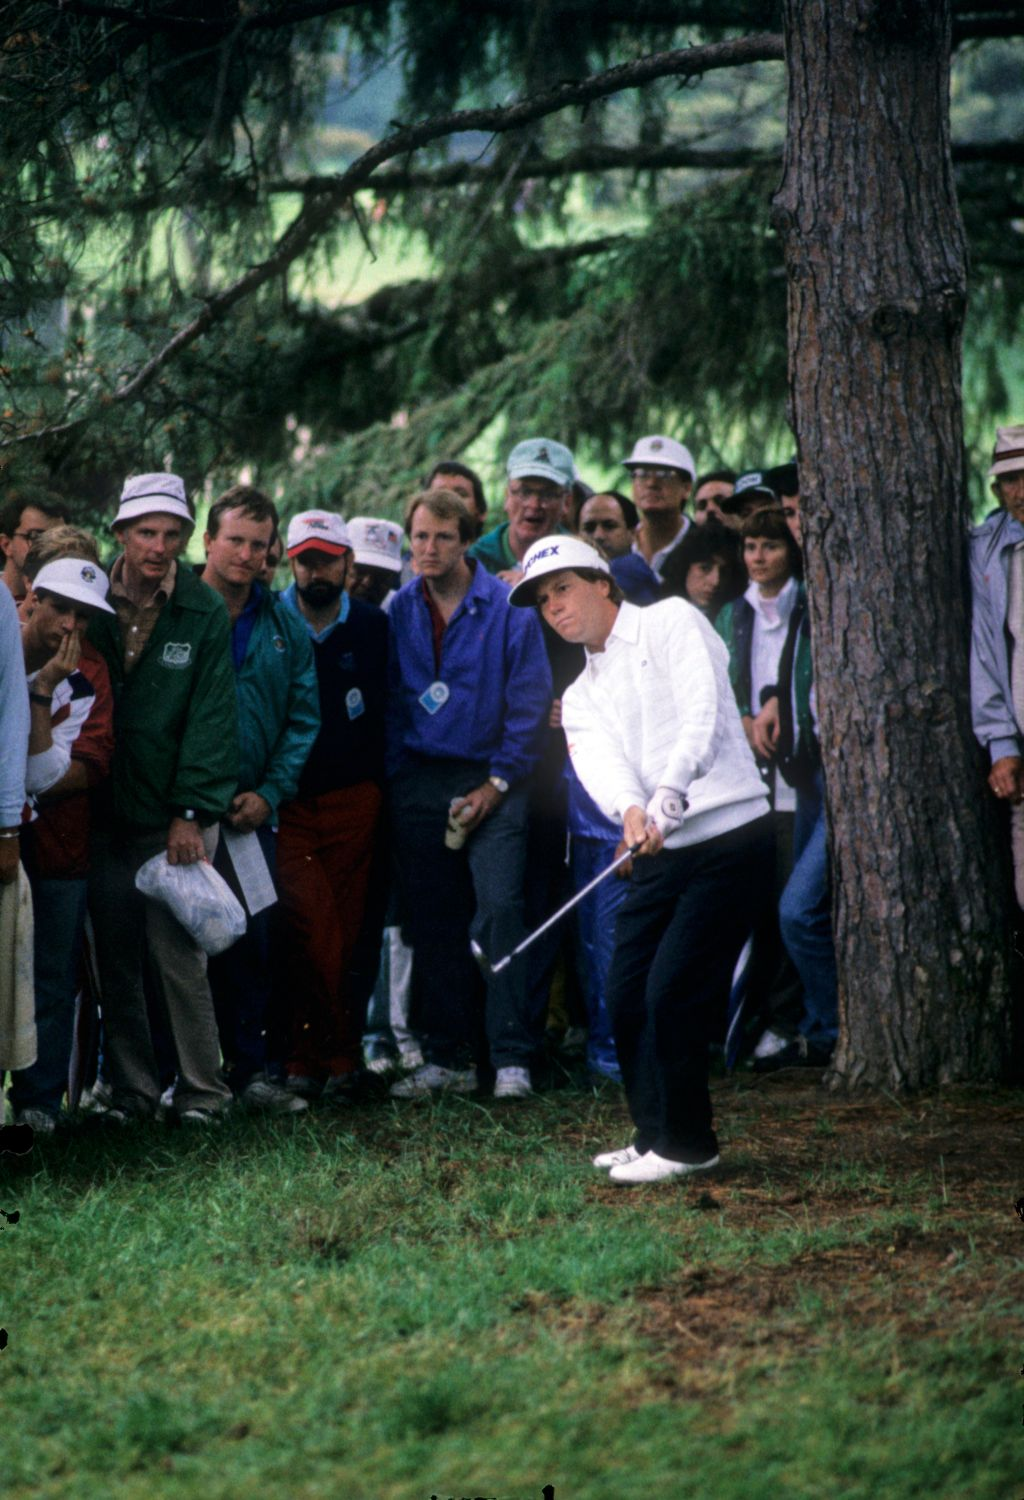 Jeff Sluman hitting from the trees during the 1989 US Open